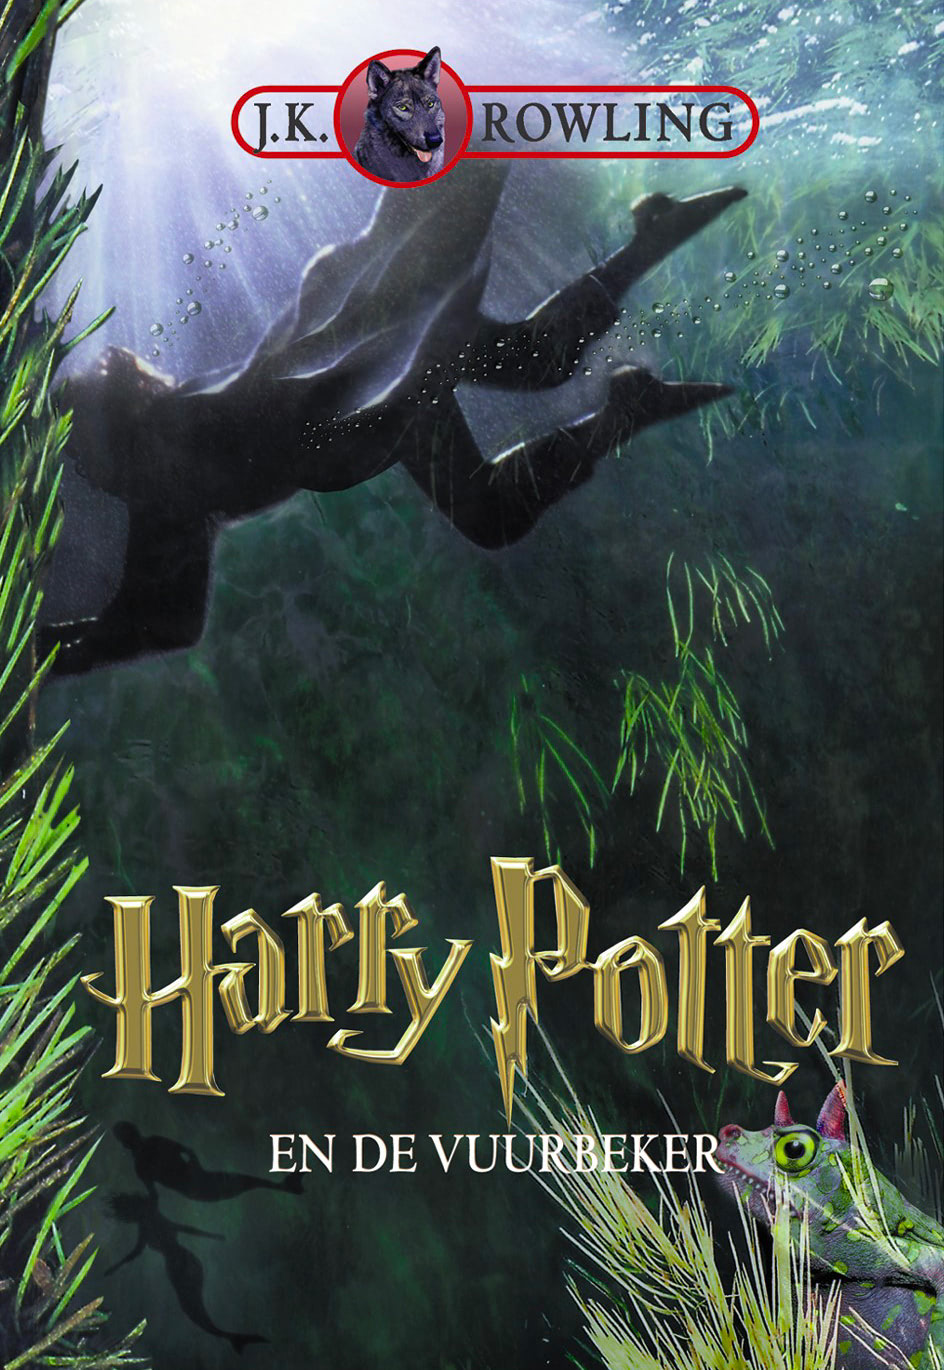 'Goblet of Fire' Dutch edition